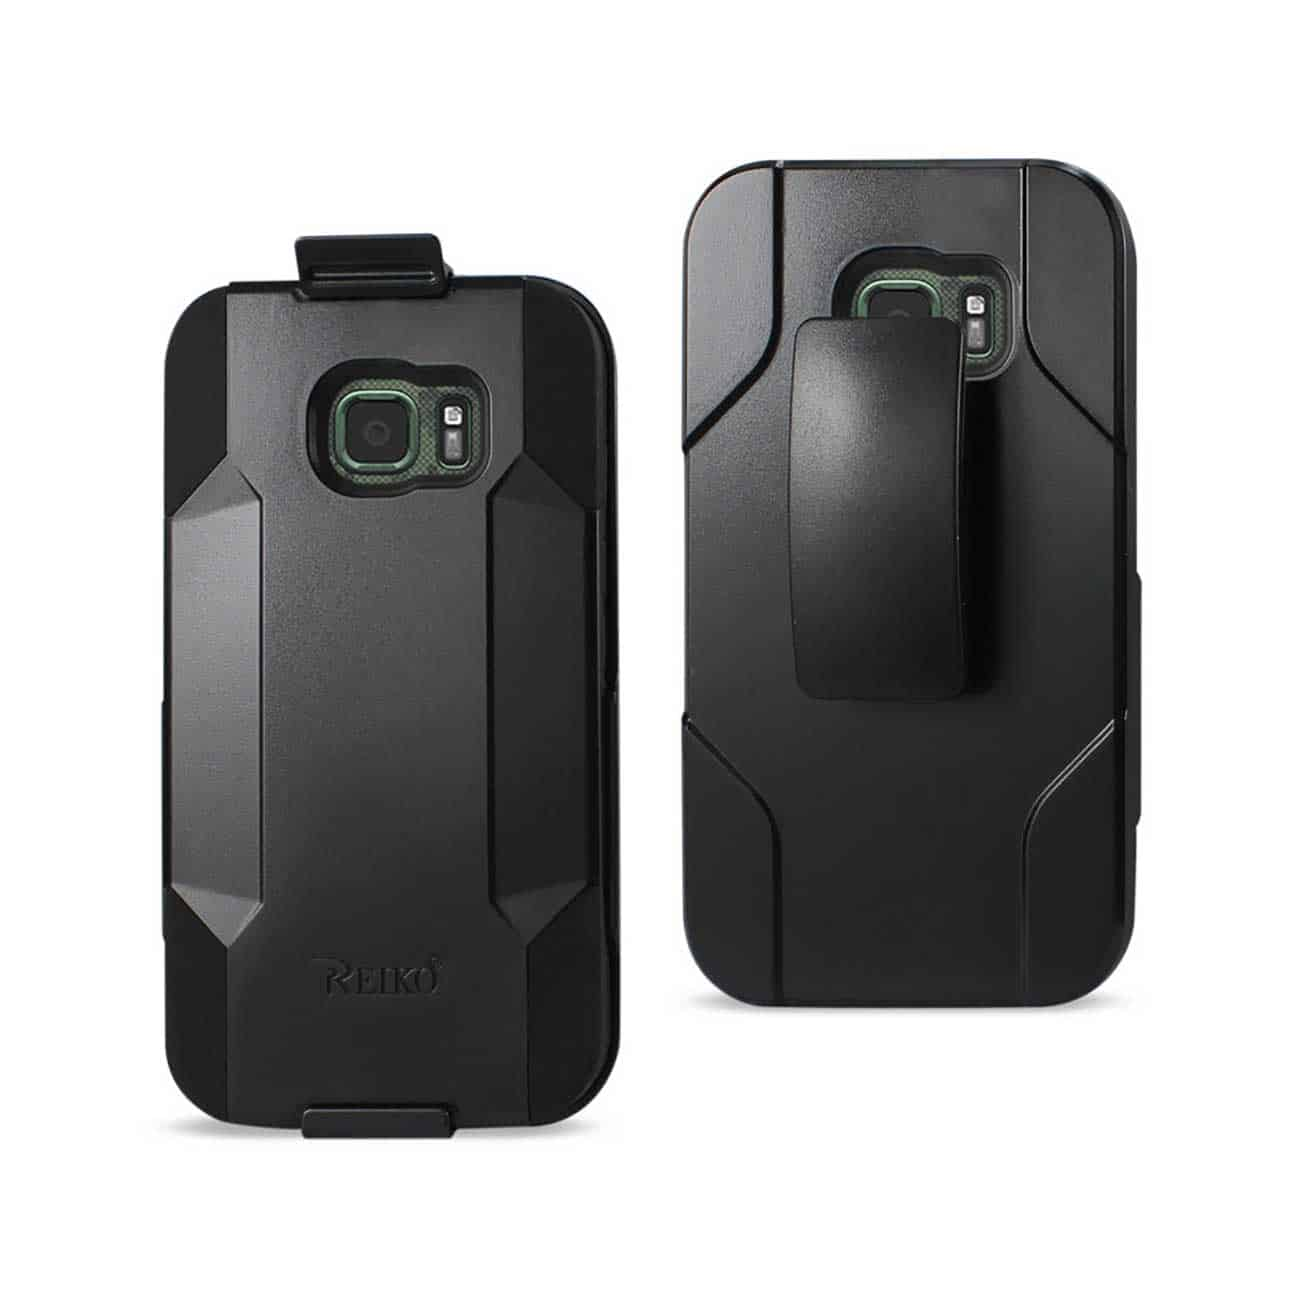 SAMSUNG GALAXY S7 ACTIVE HYBRID HEAVY DUTY HOLSTER COMBO CASE IN BLACK